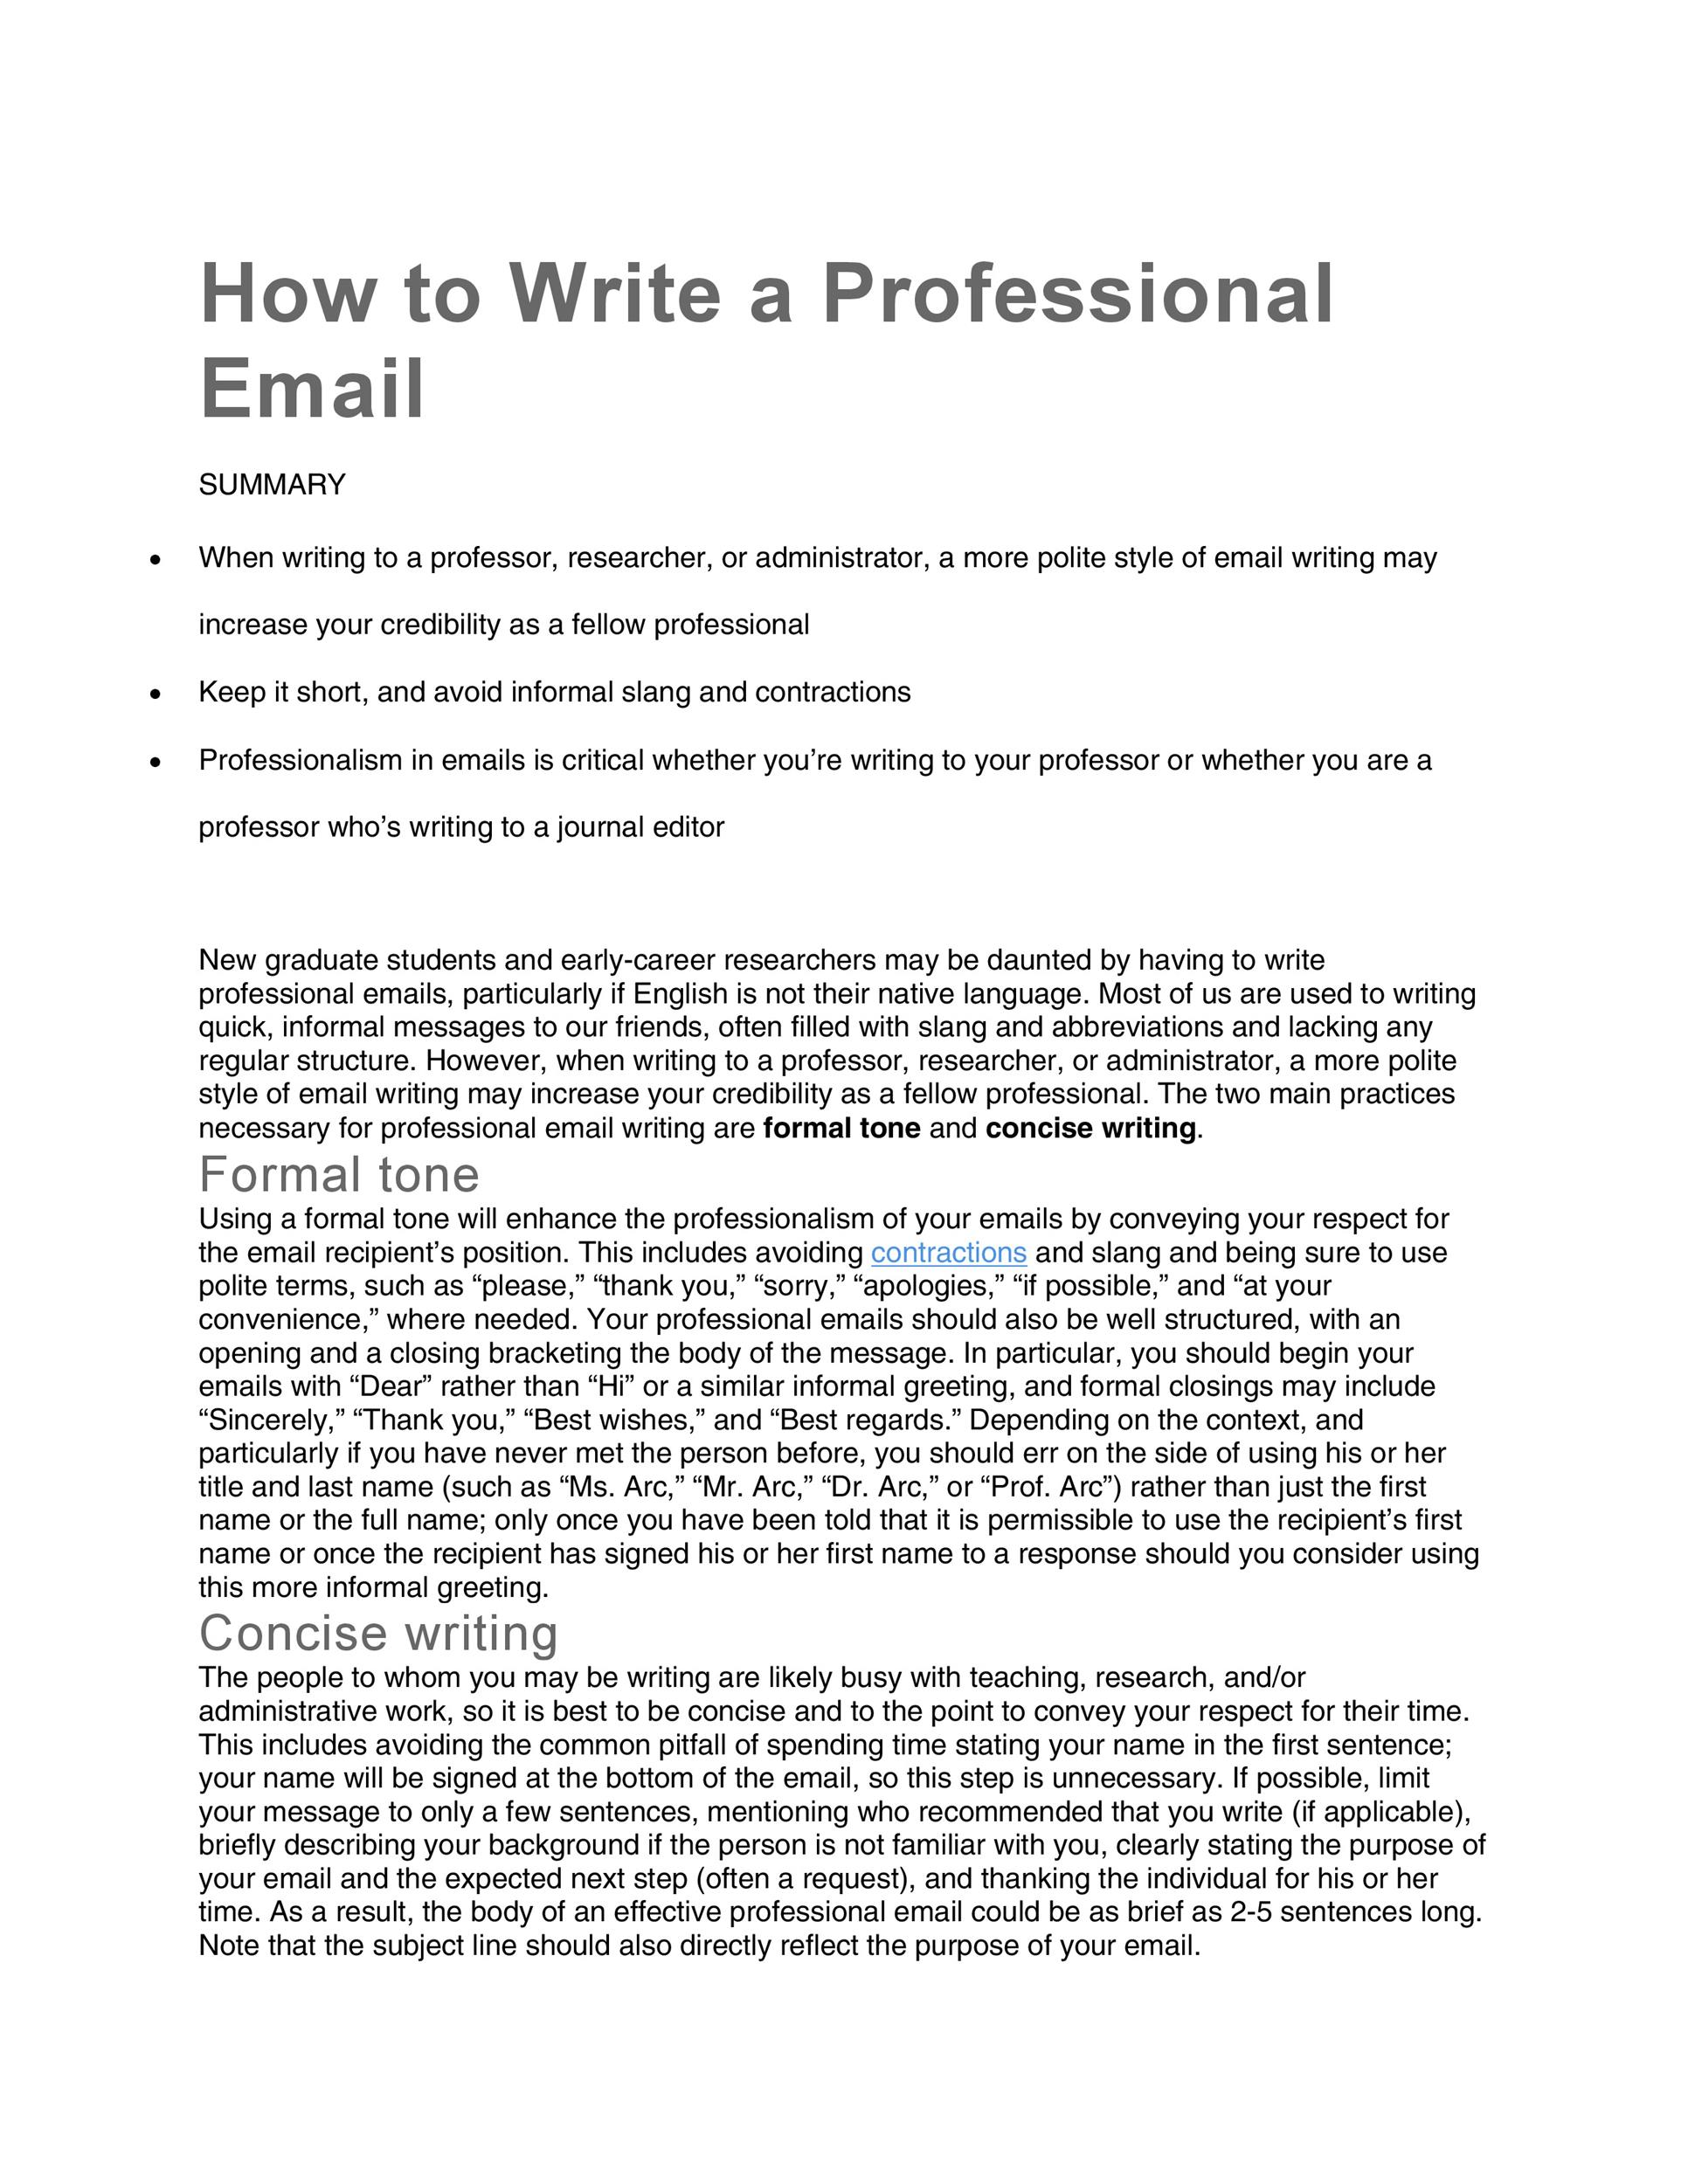 Free professional email example 20